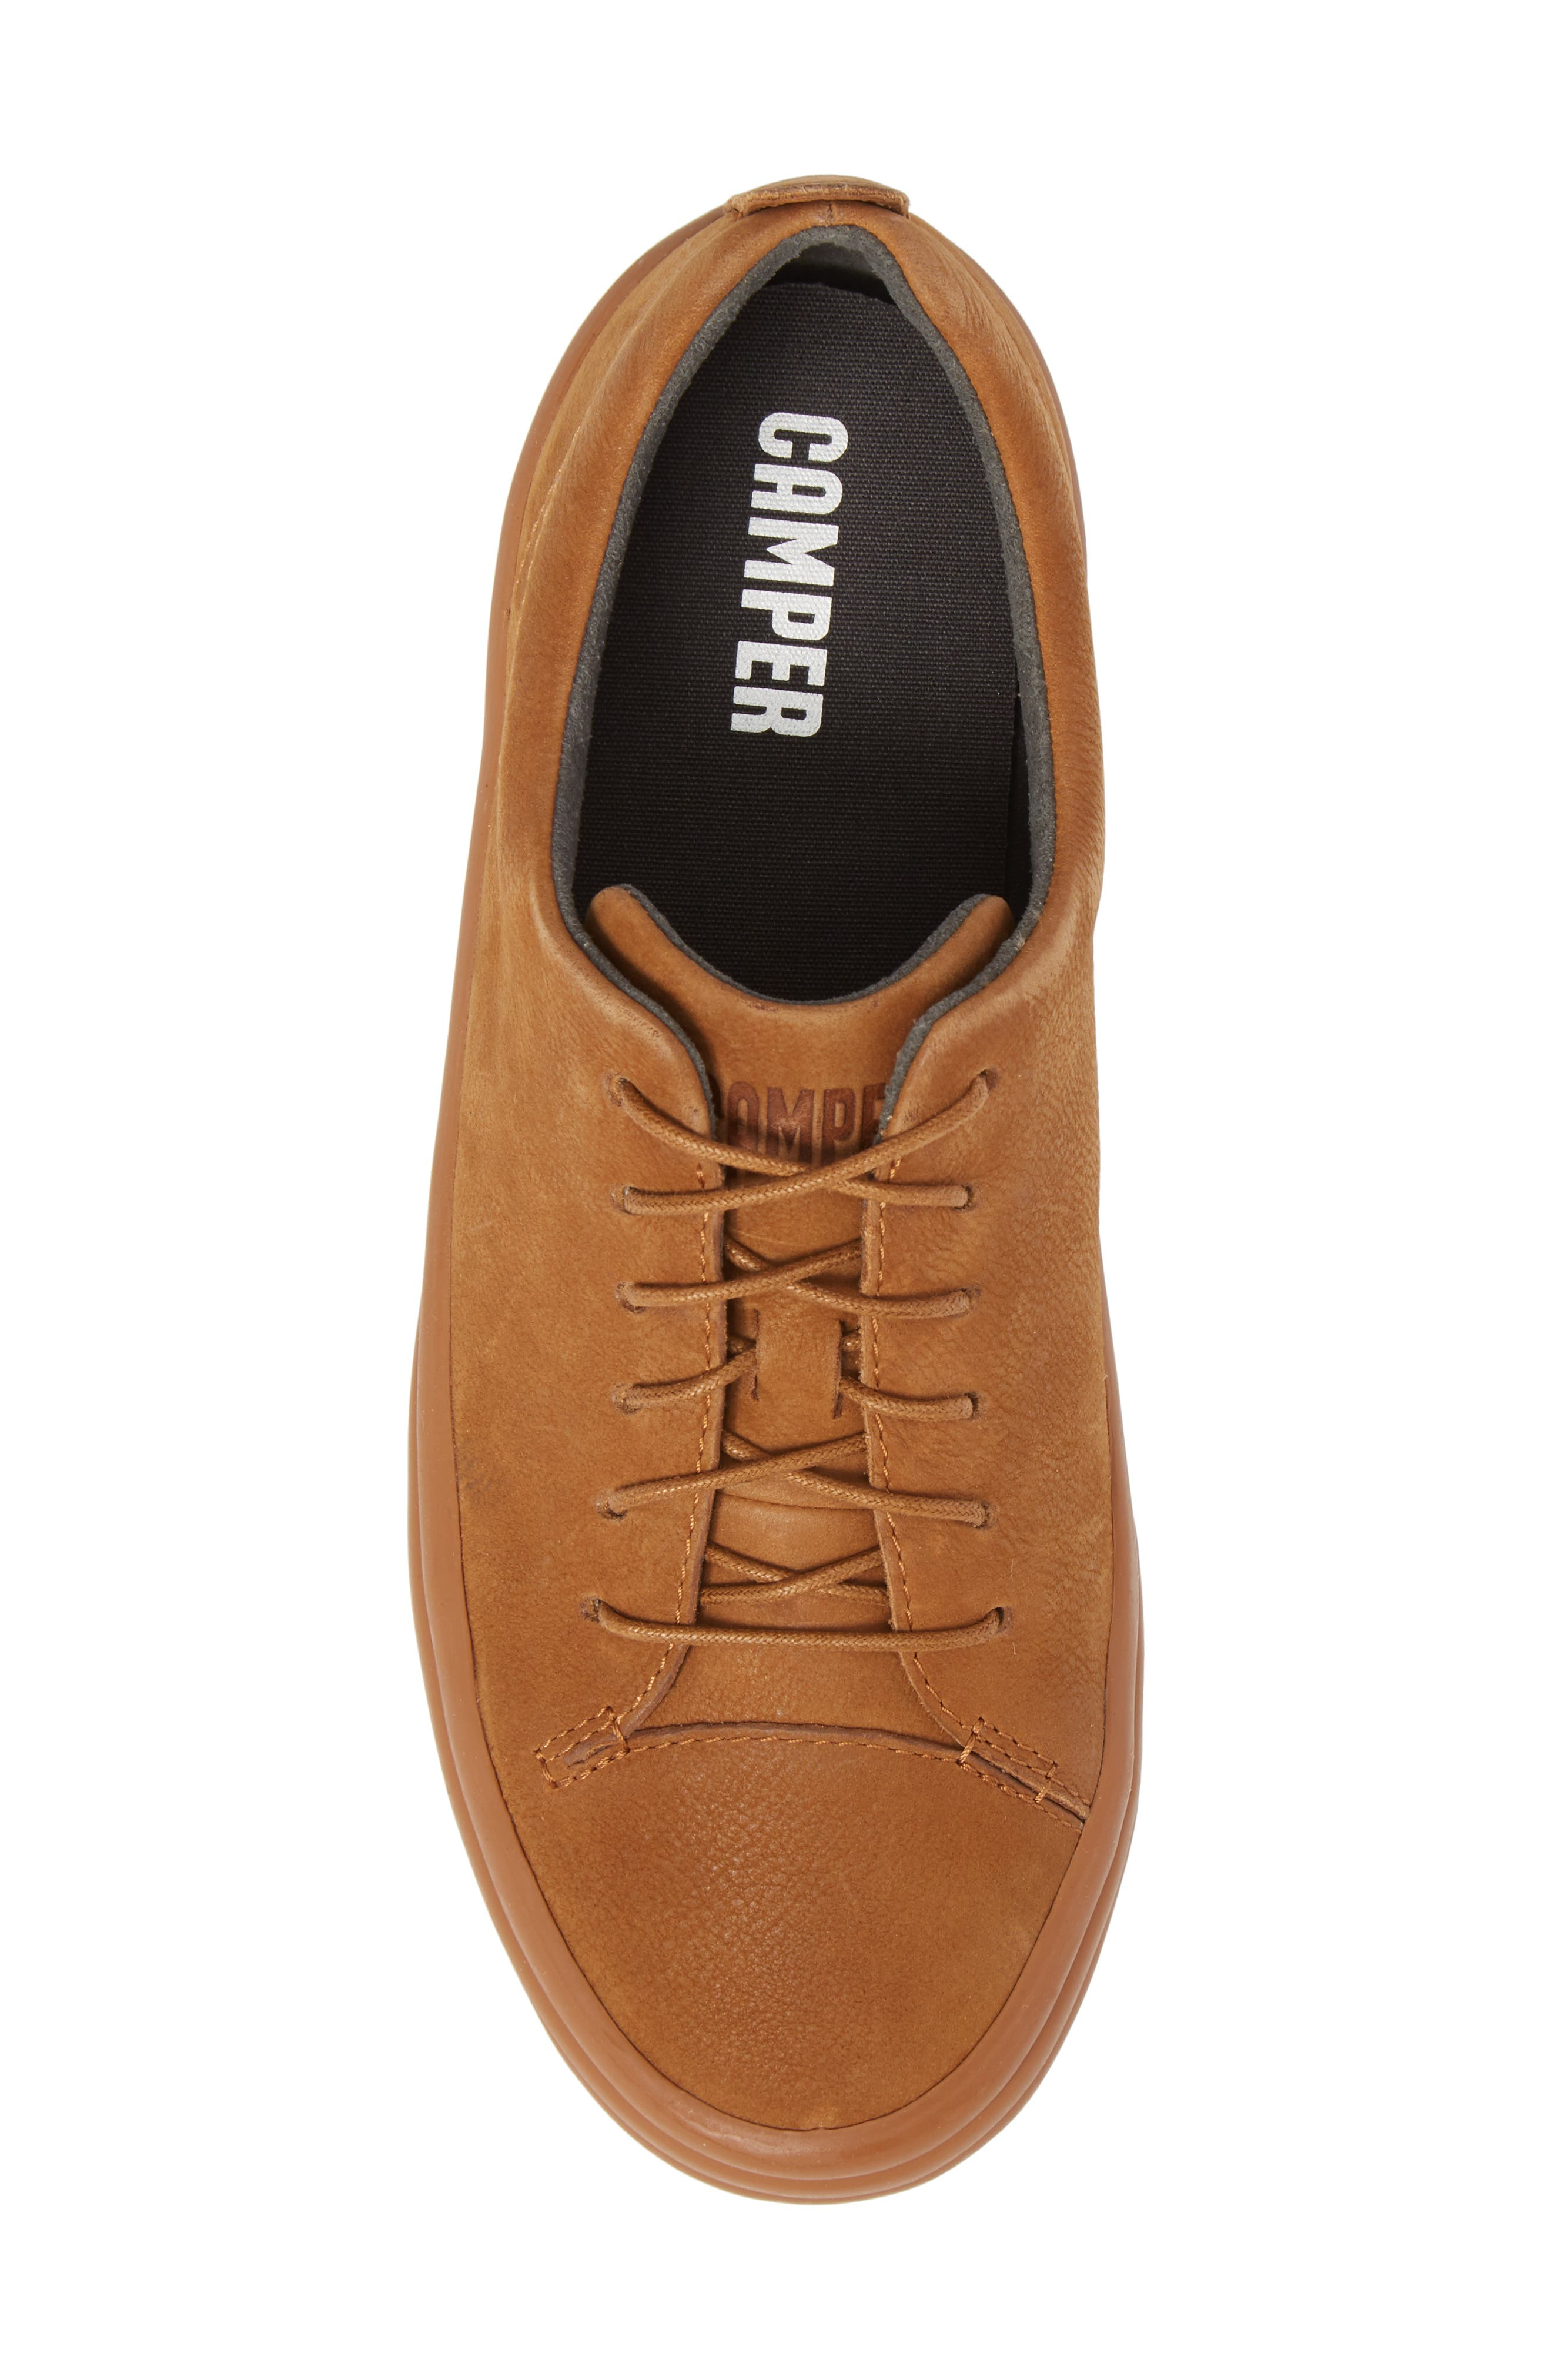 Hoops Sneaker,                             Alternate thumbnail 5, color,                             Rust/ Copper Leather